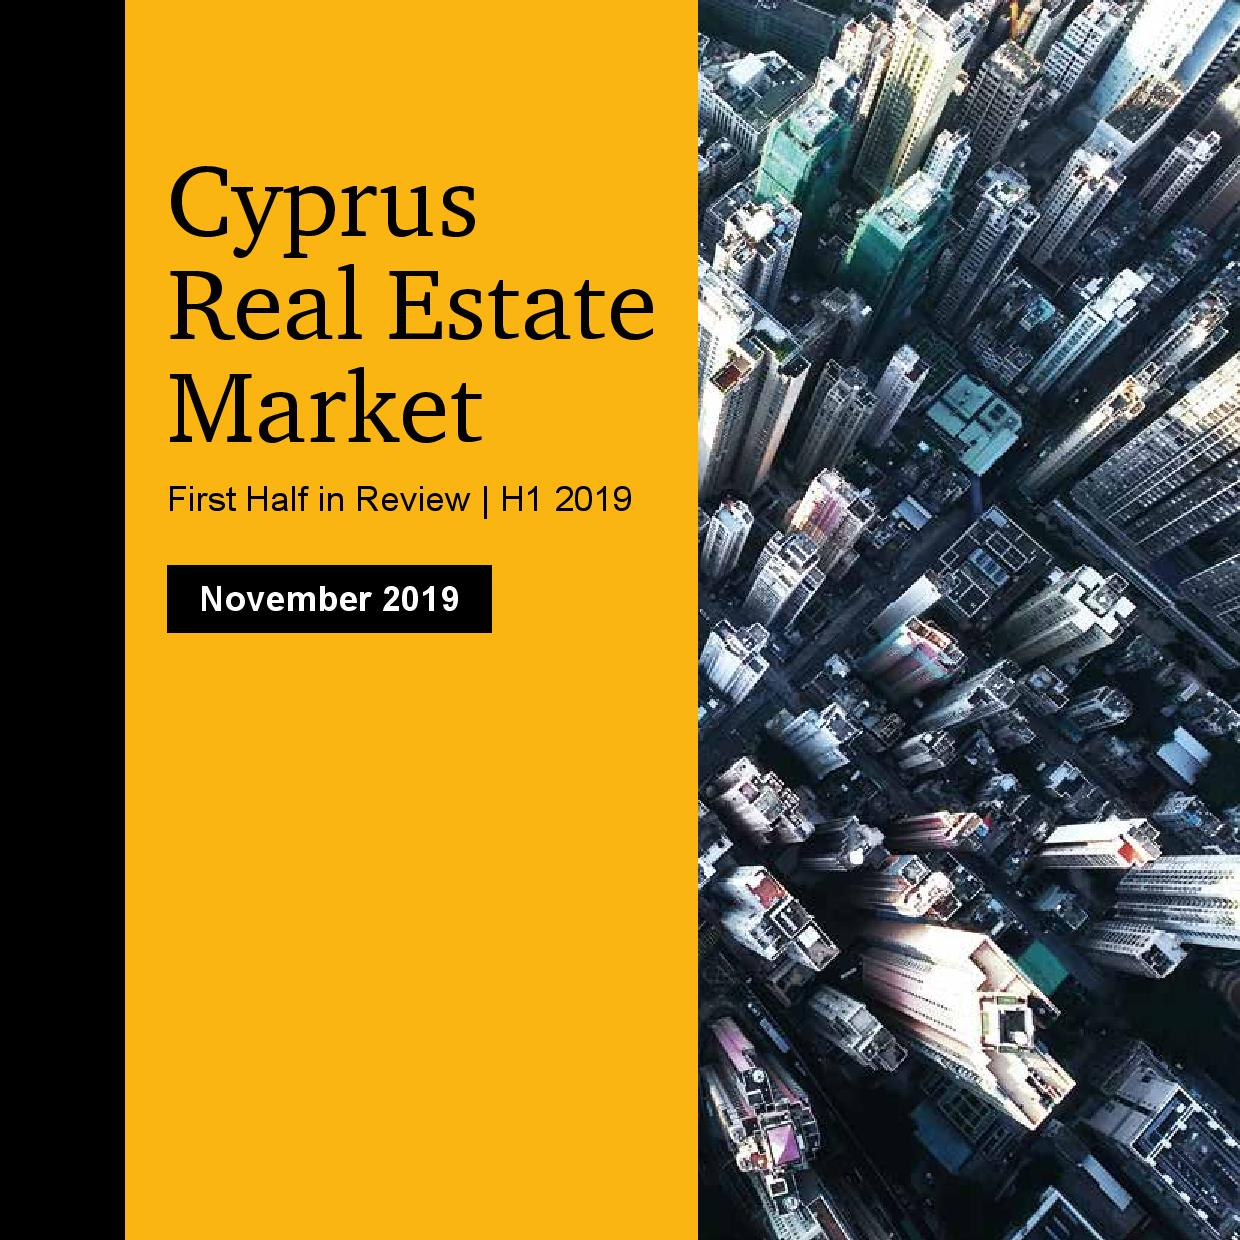 PwC: Cyprus Real Estate Market - First Half in Review 2019